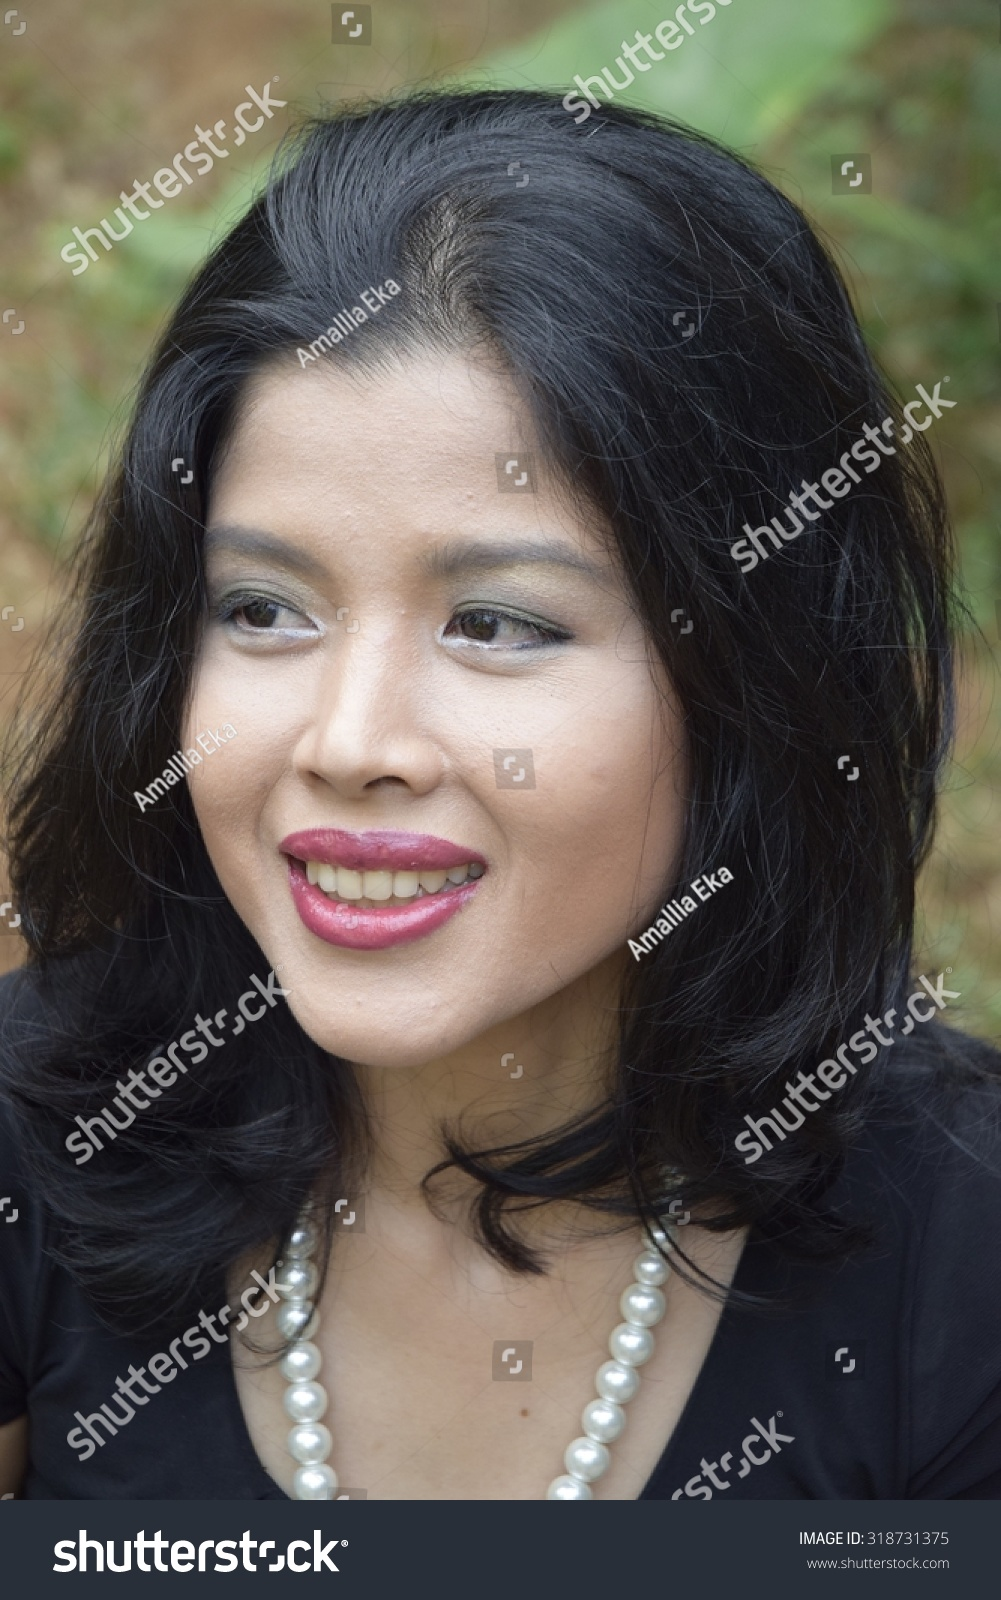 Indonesian Celebrity Classy beautiful indonesian woman stock photo 318731375 - shutterstock